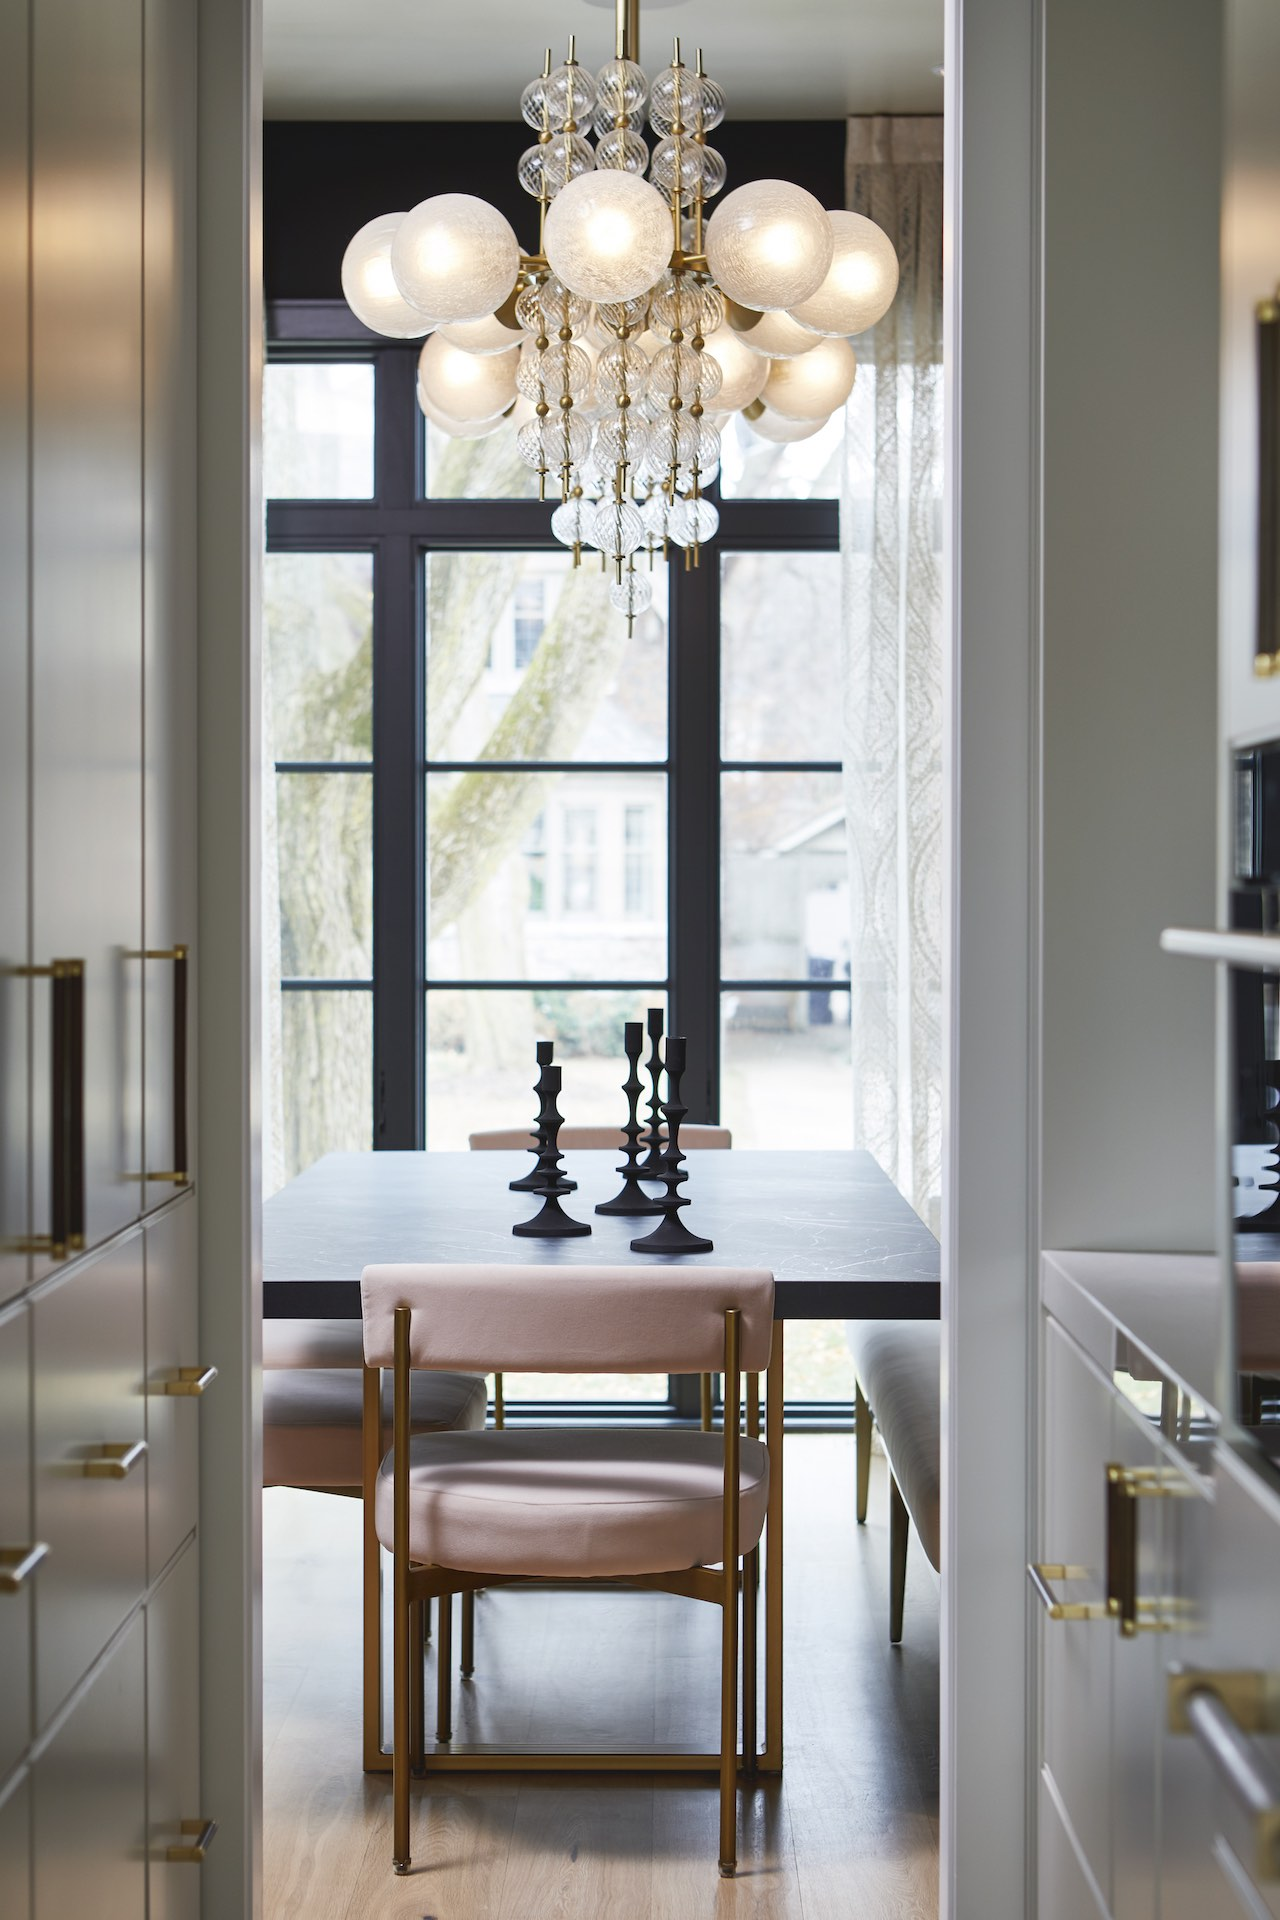 dinning table and chairs with light fixture